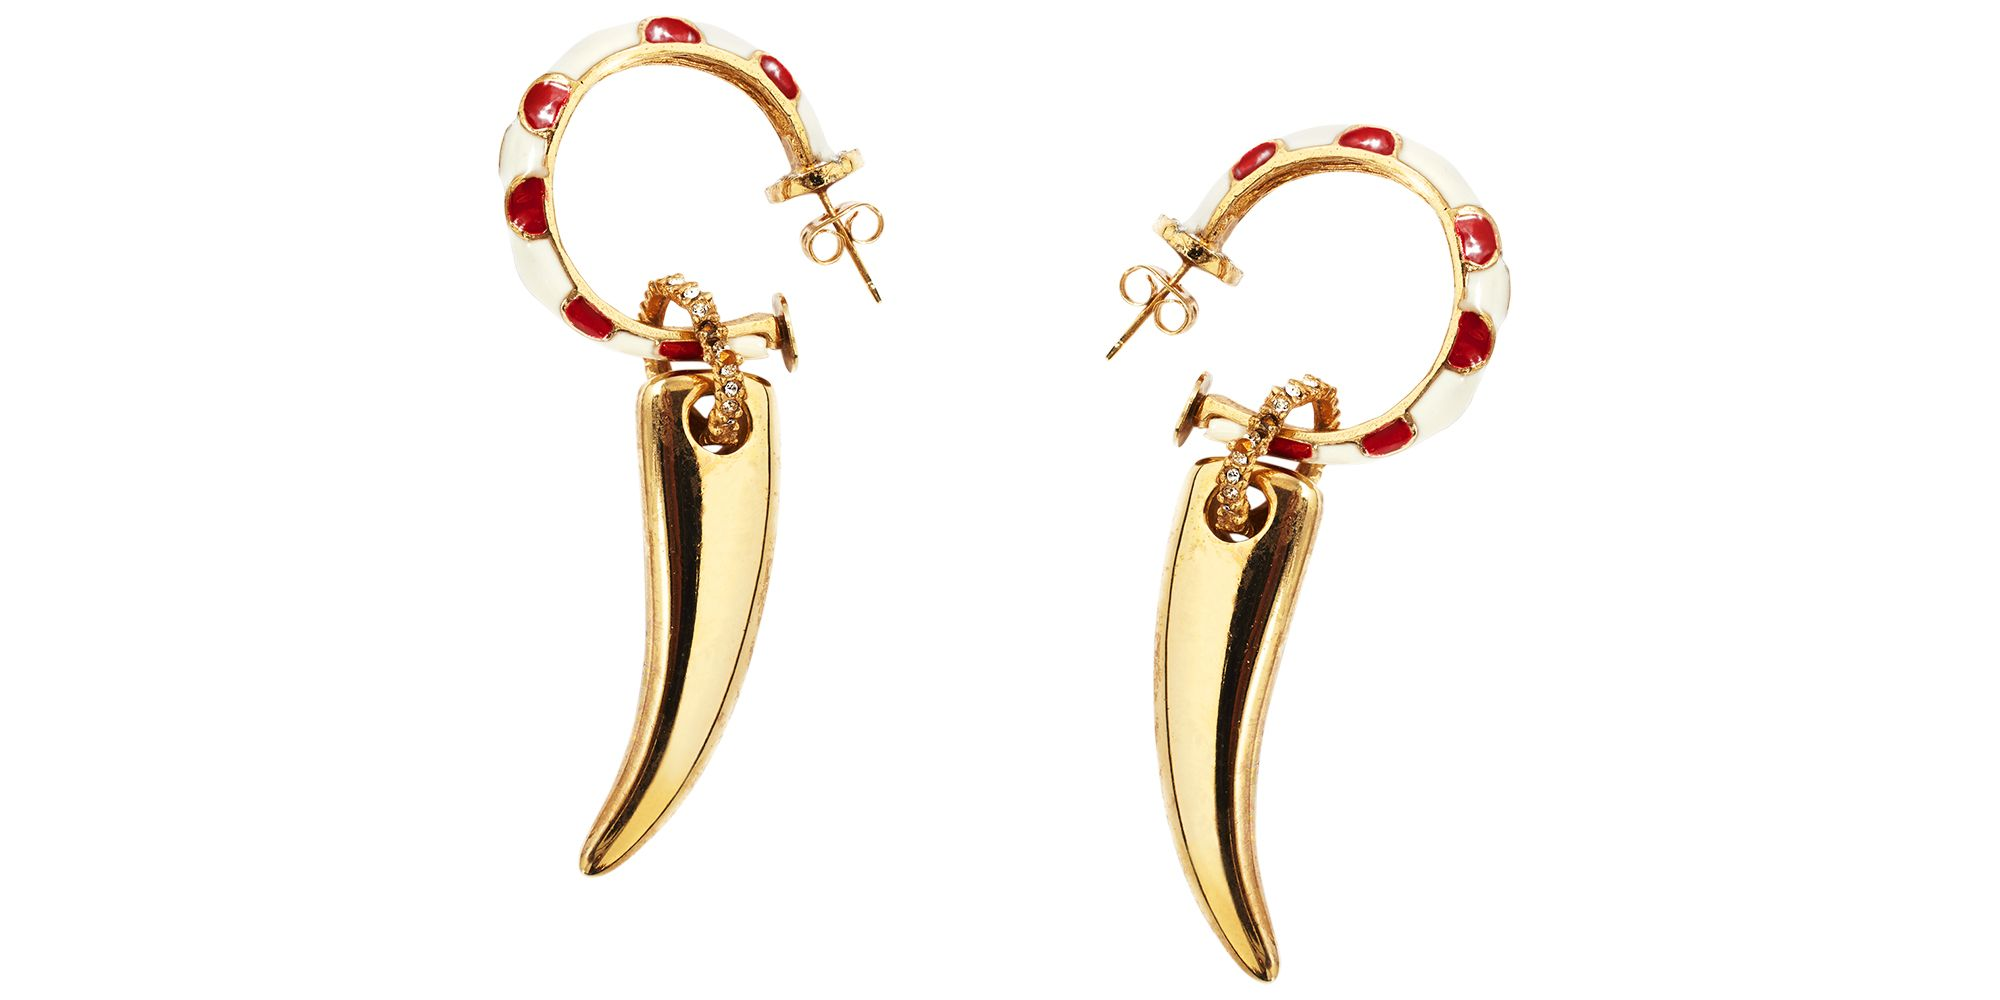 "<p>Go for a wild mix of metals and materials.</p><p><strong>Maison Mayle</strong> earrings, $275, Capitol, Charlotte, NC, 704-366-0388<span class=""redactor-invisible-space"">. <br></span></p>"